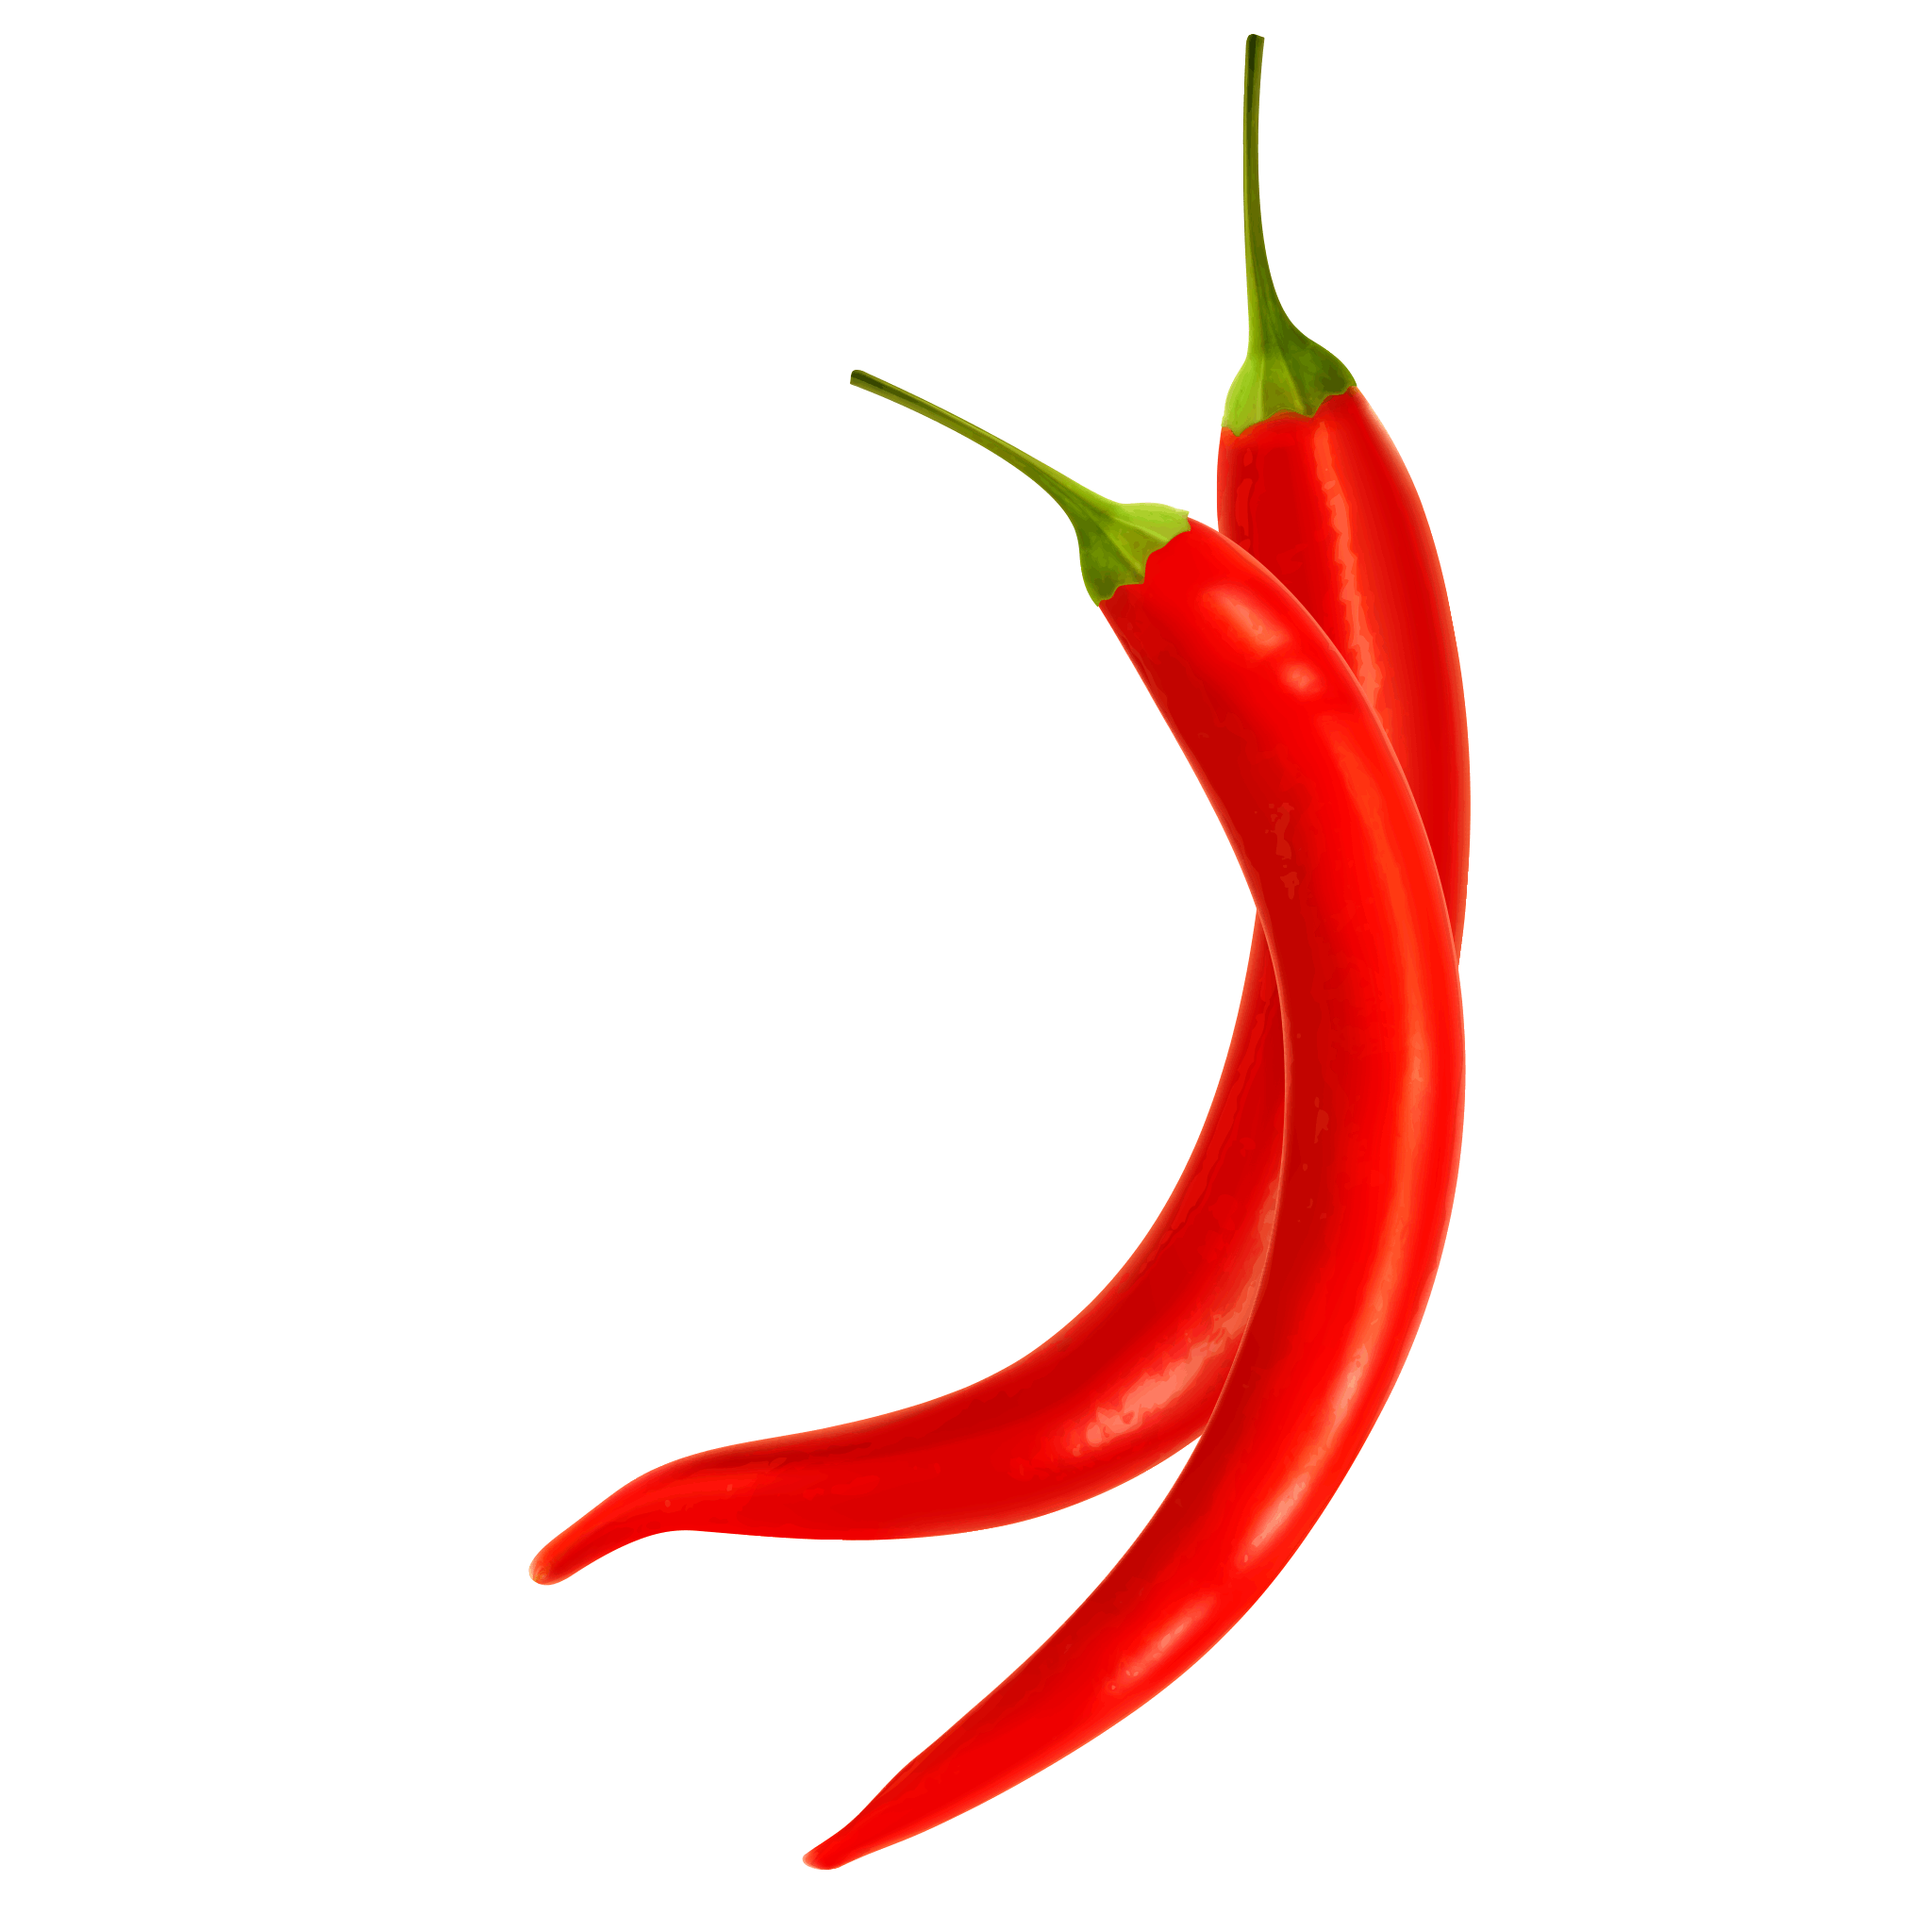 Pepper clipart red pepper. Chili png hd image